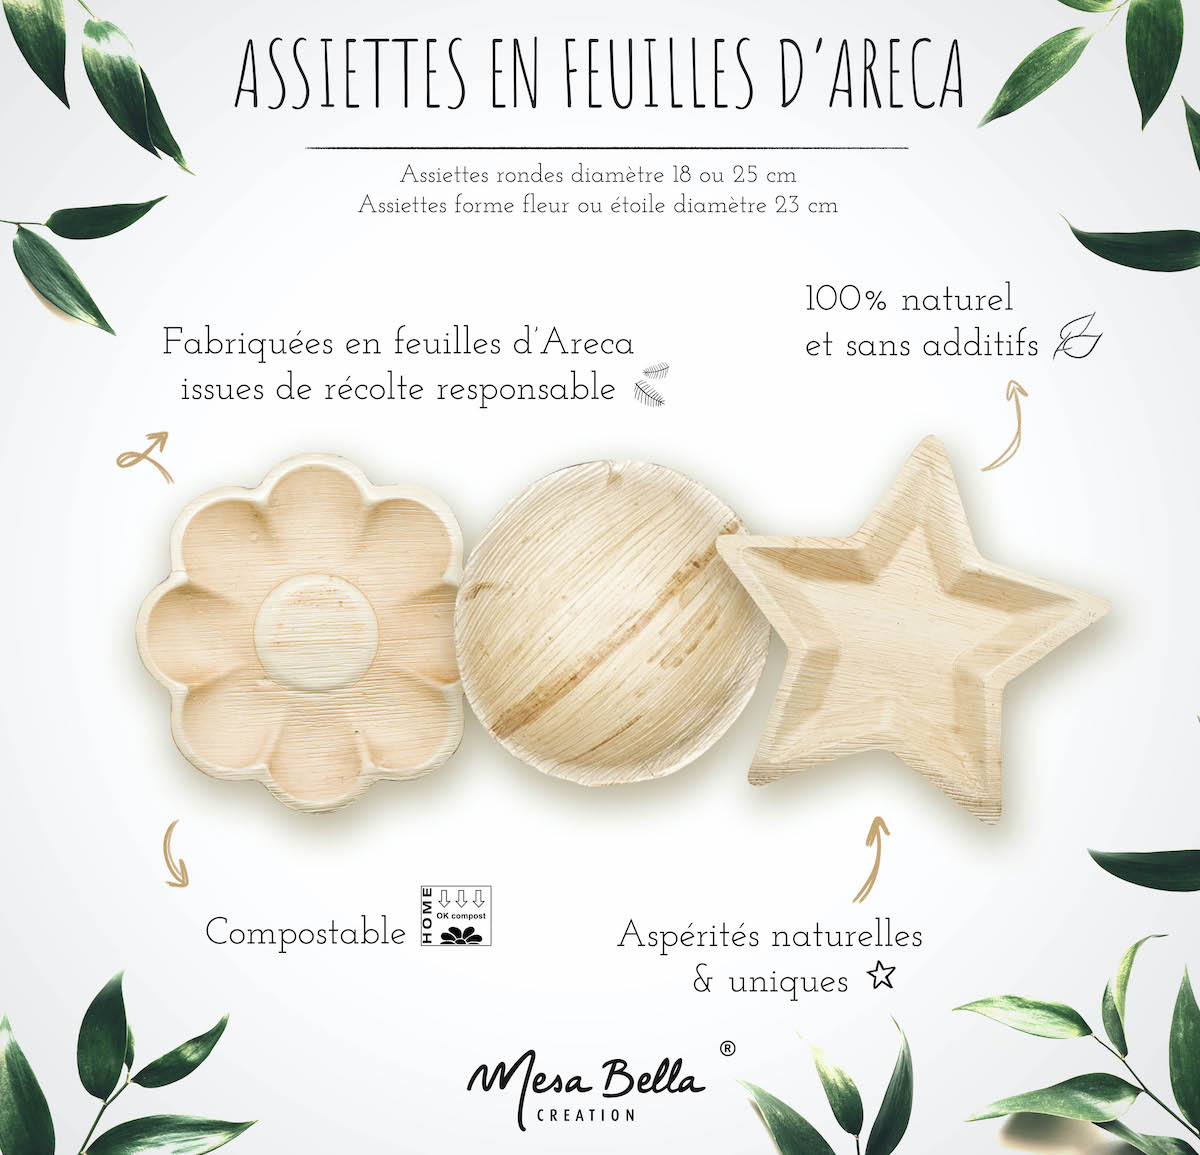 assiette recyclable feuille areca